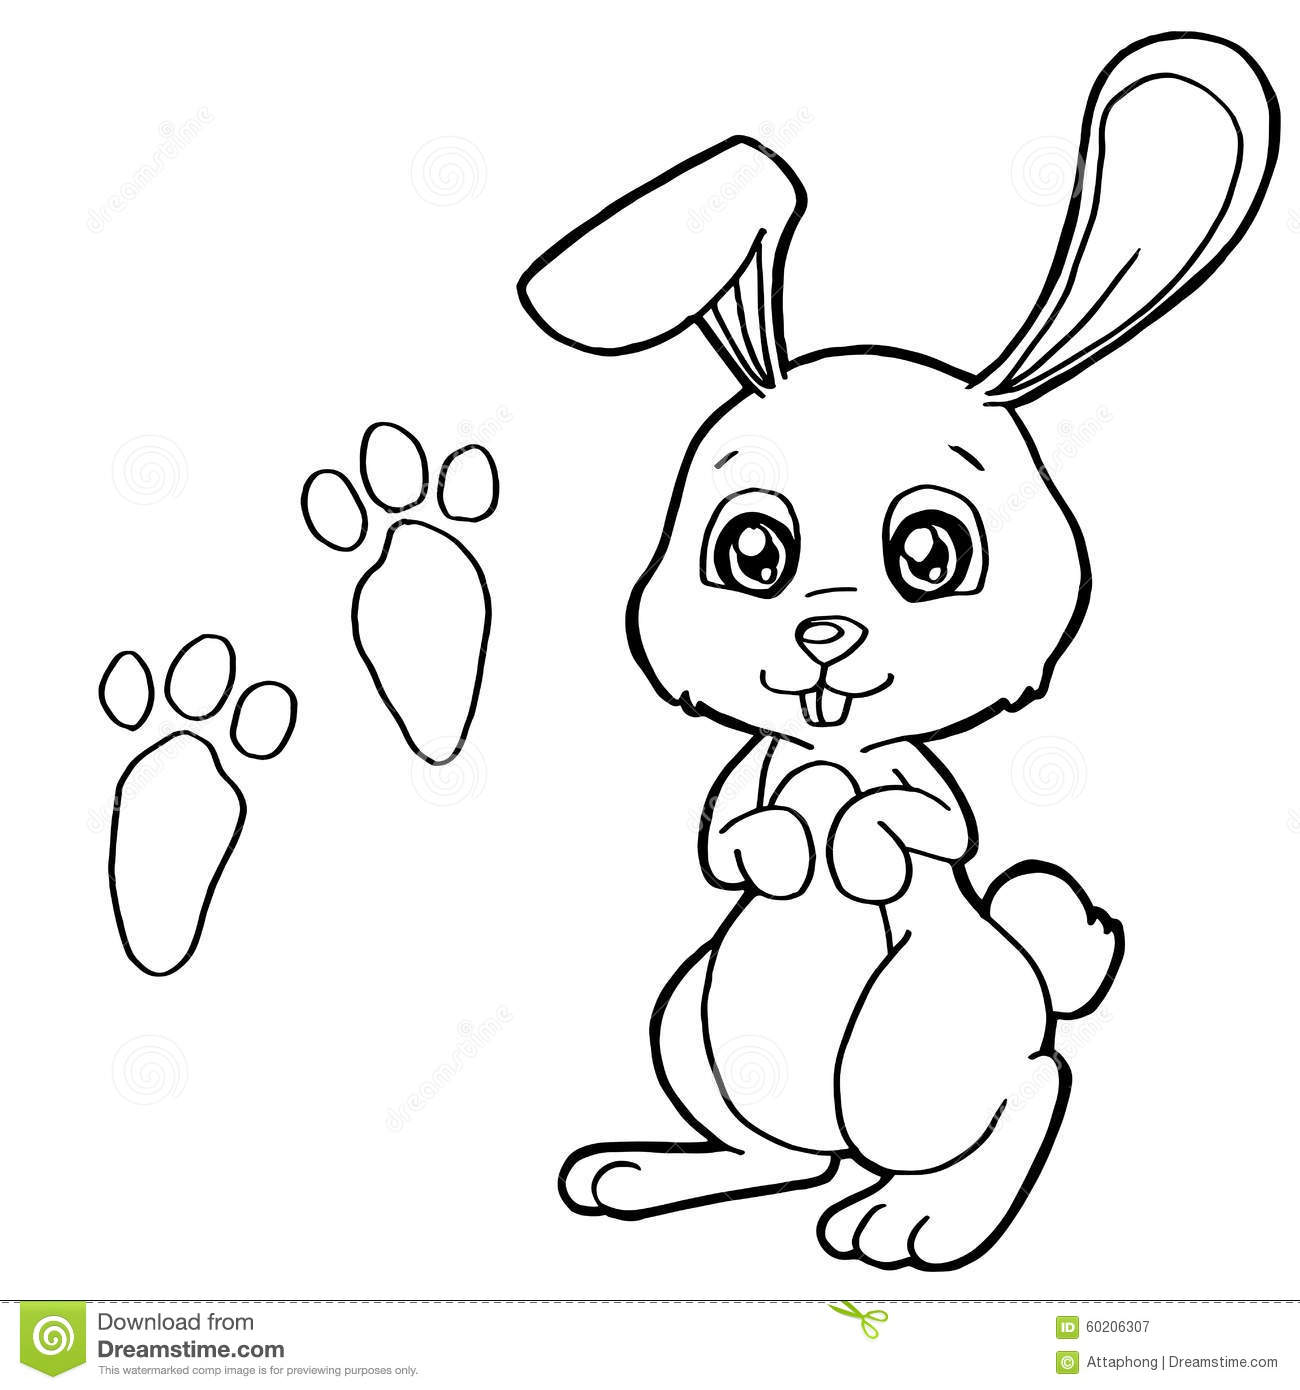 Paw Print With Rabbits Coloring Pages Vector Stock Vector ...